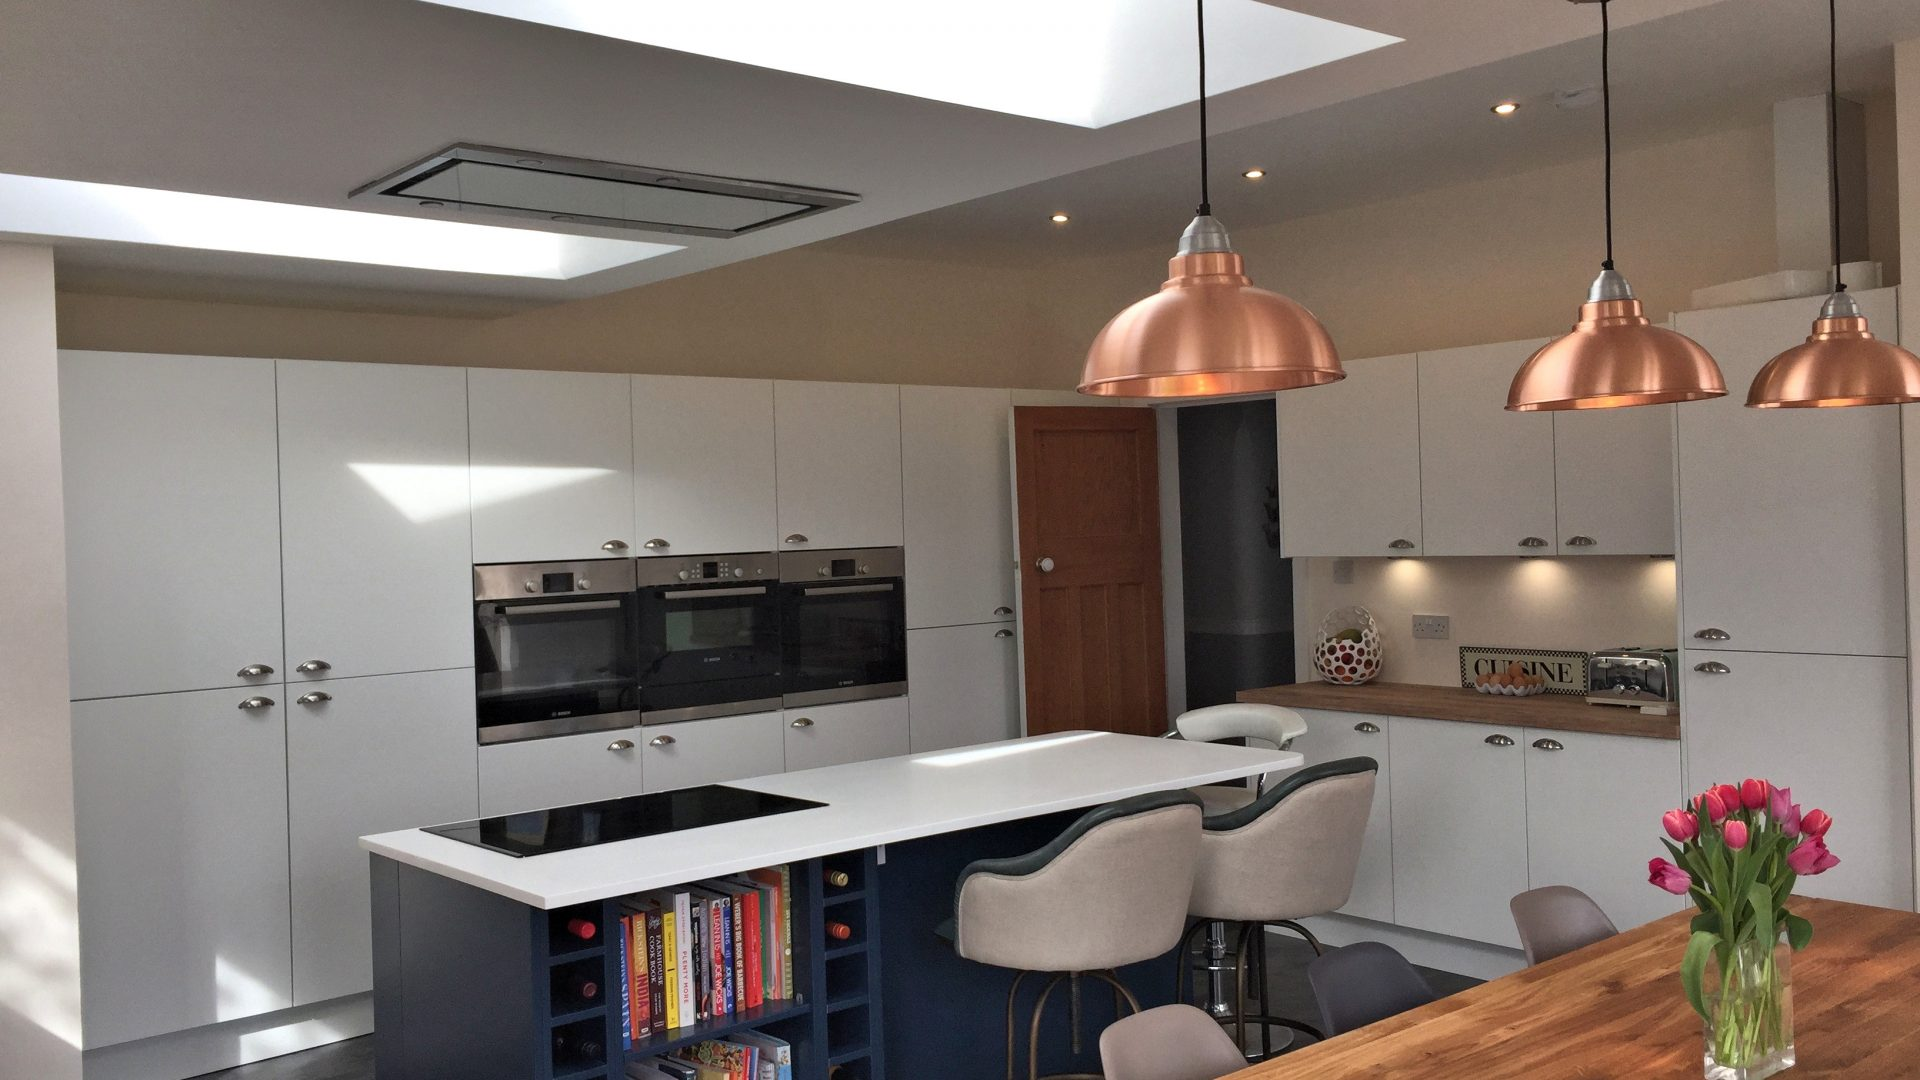 https://www.aspiretradekitchens.co.uk/wp-content/uploads/2017/10/british-contemporary-with-bespoke-coloured-island-2Glasgow-South-1920x1080.jpg